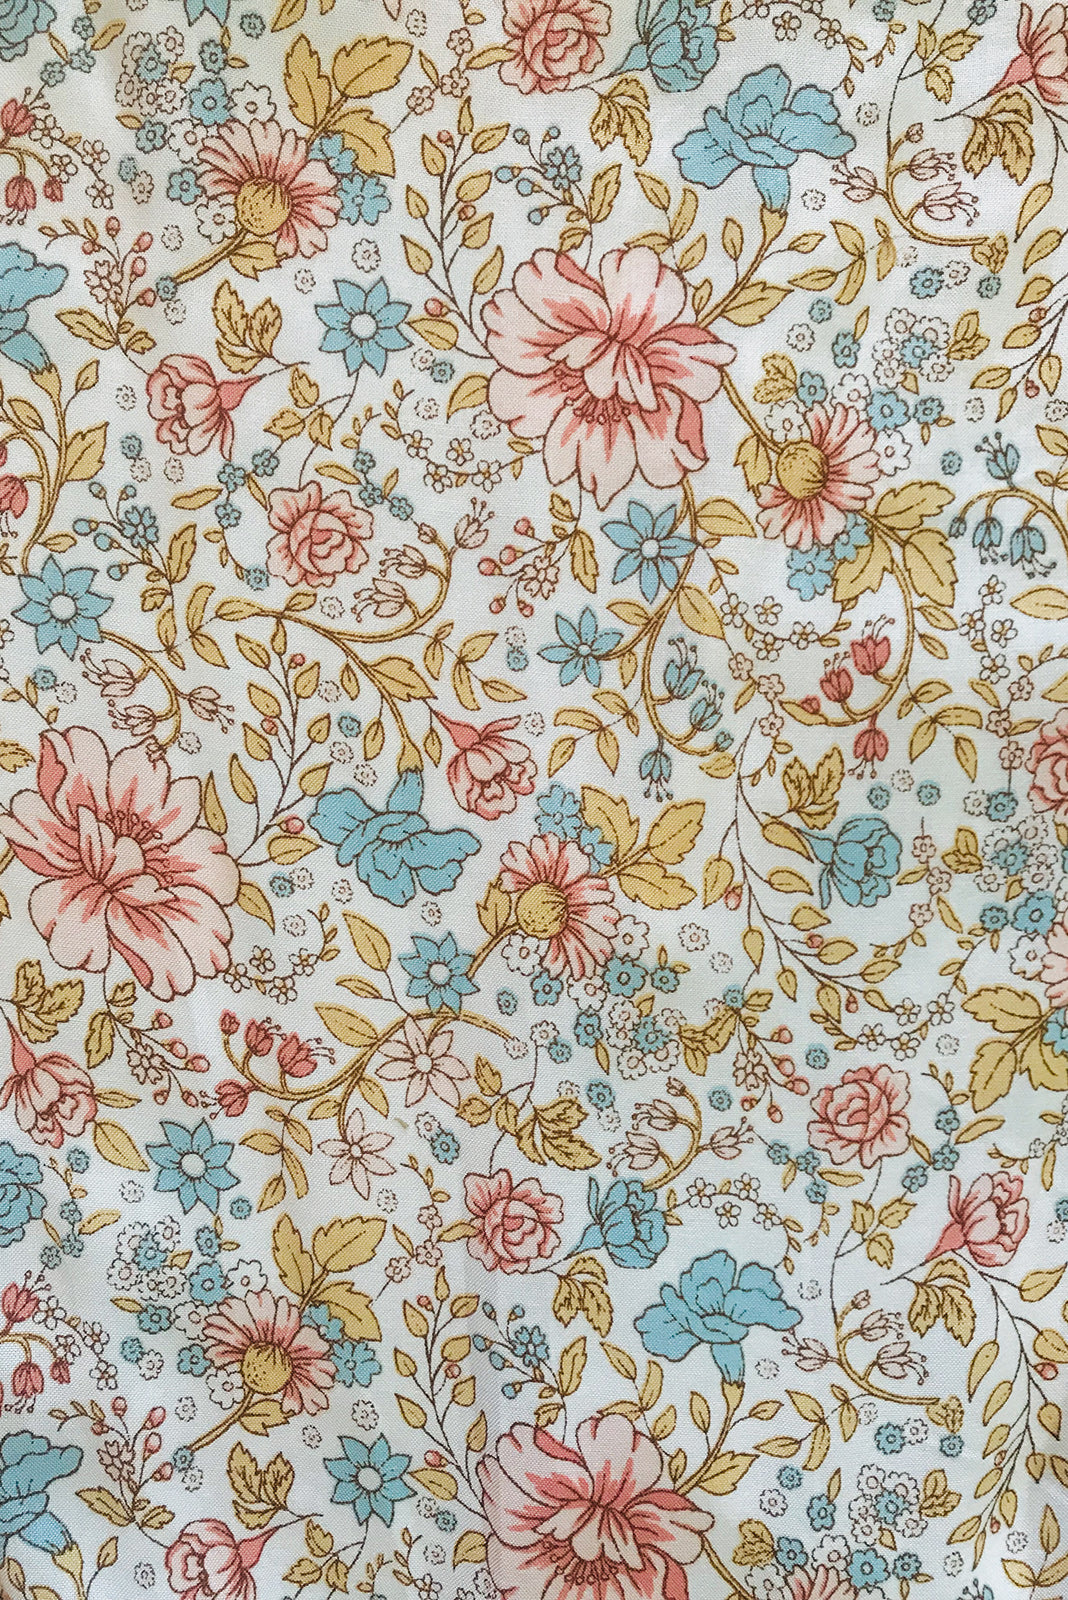 Fabric swatch, 100% woven rayon, off-white base with medium peach, gold and light blue floral print.